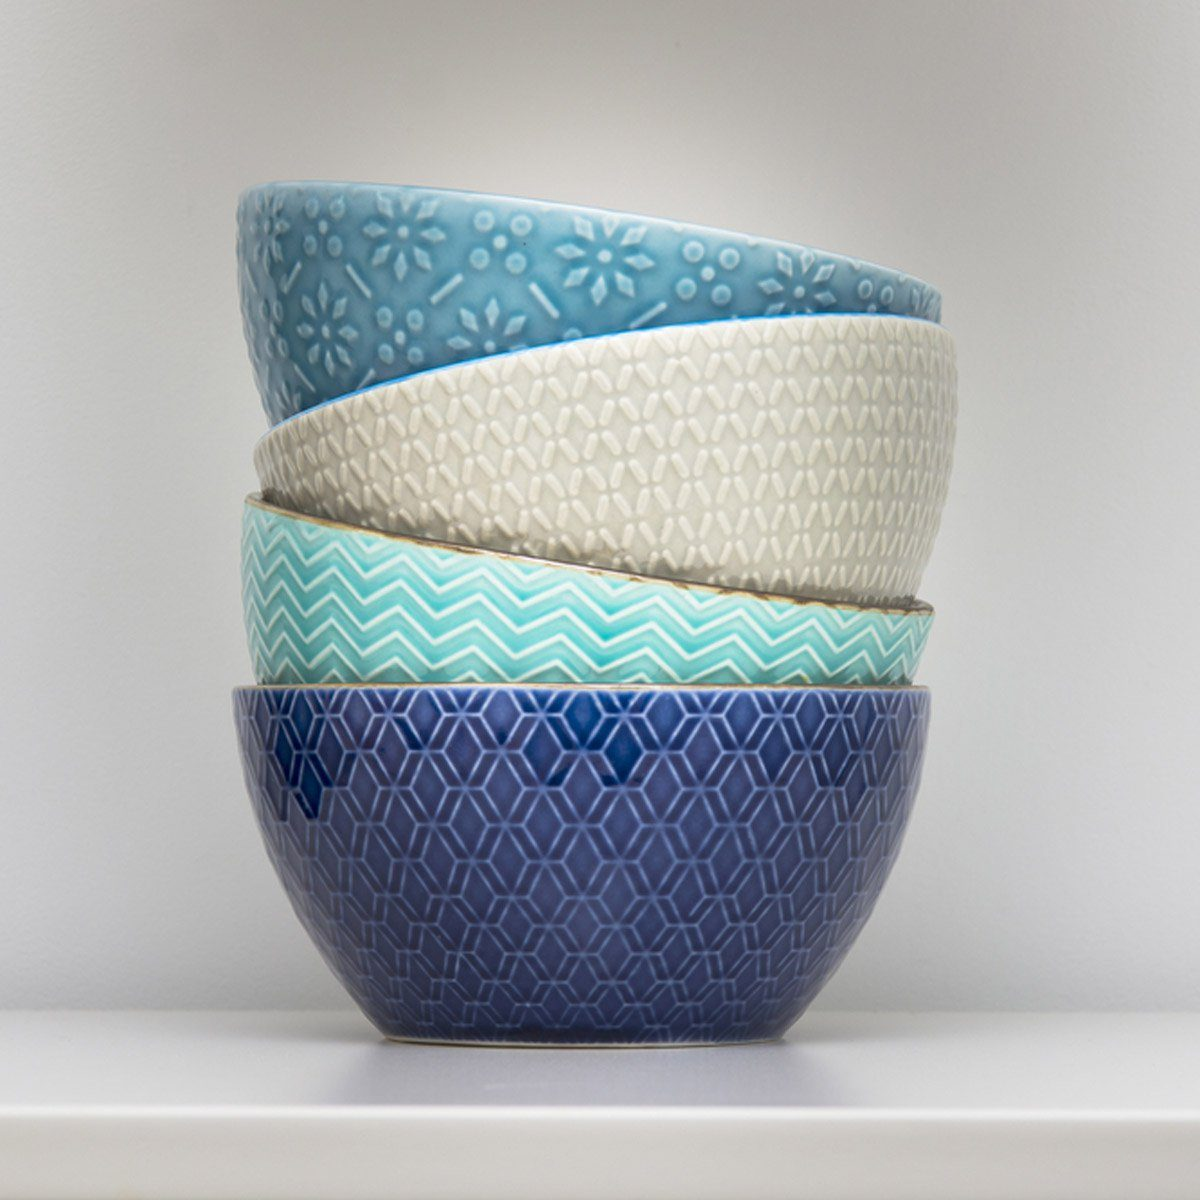 Stack of small bowls